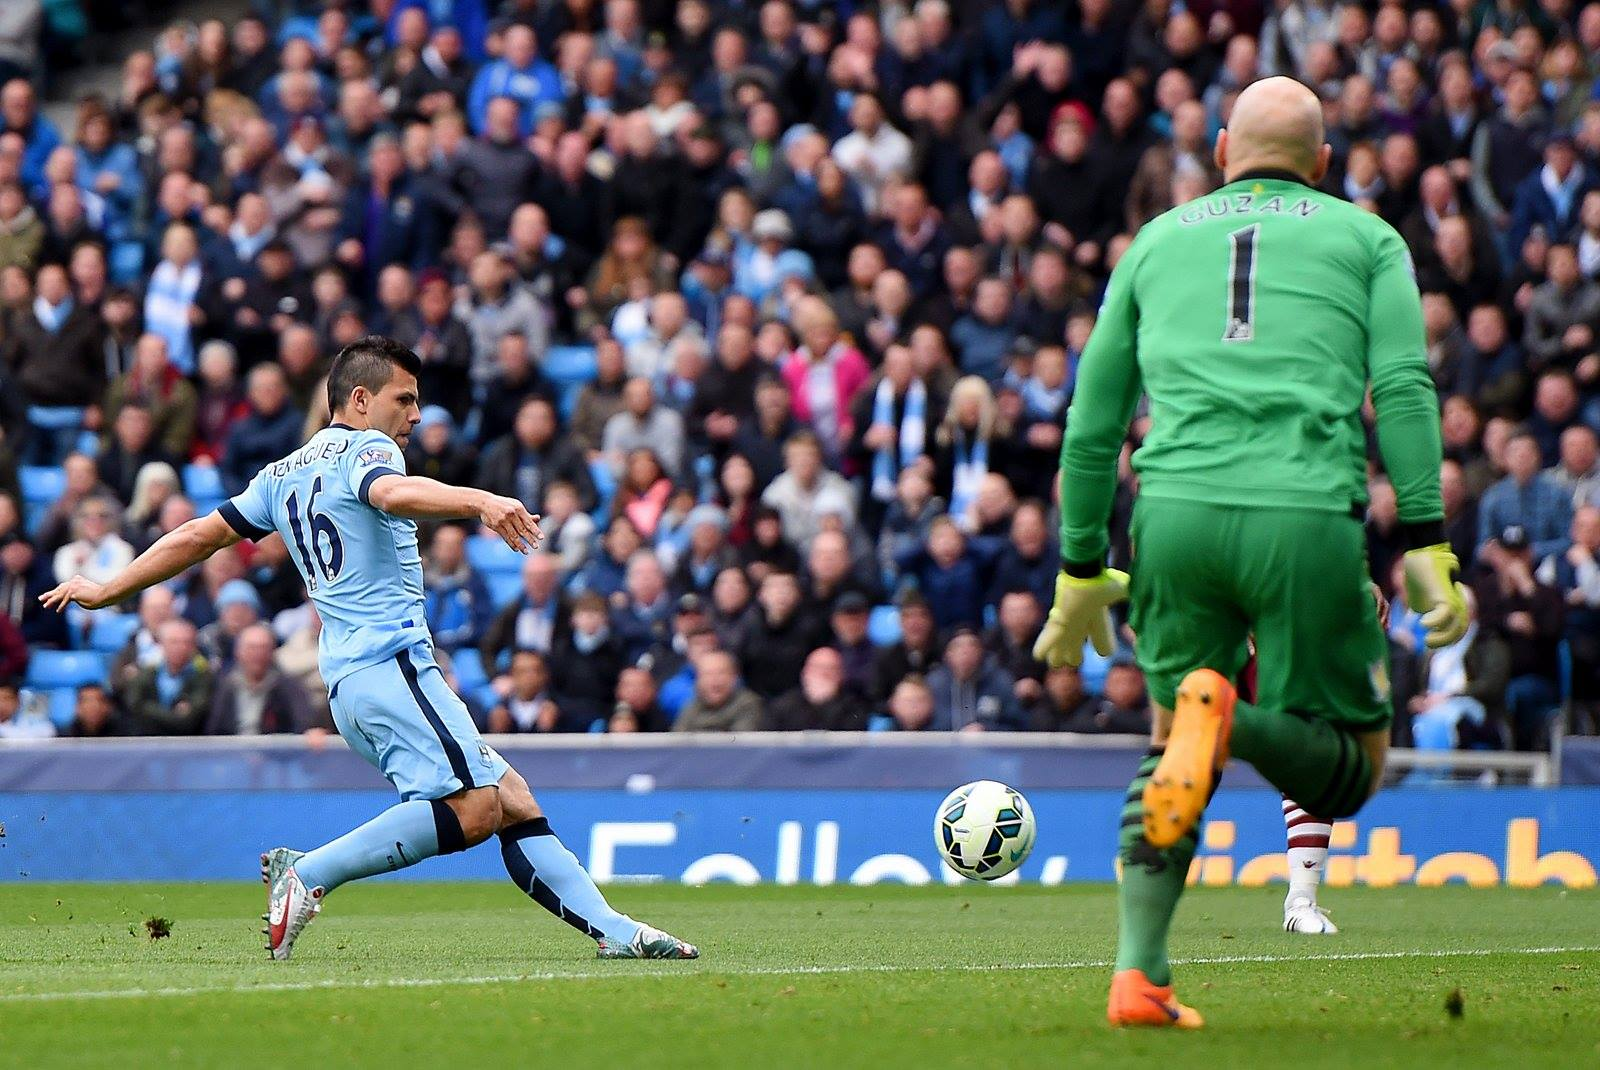 21 today - Sergio slots home the goal that puts him top of the race for the Golden Boot. Courtesy@MCFC